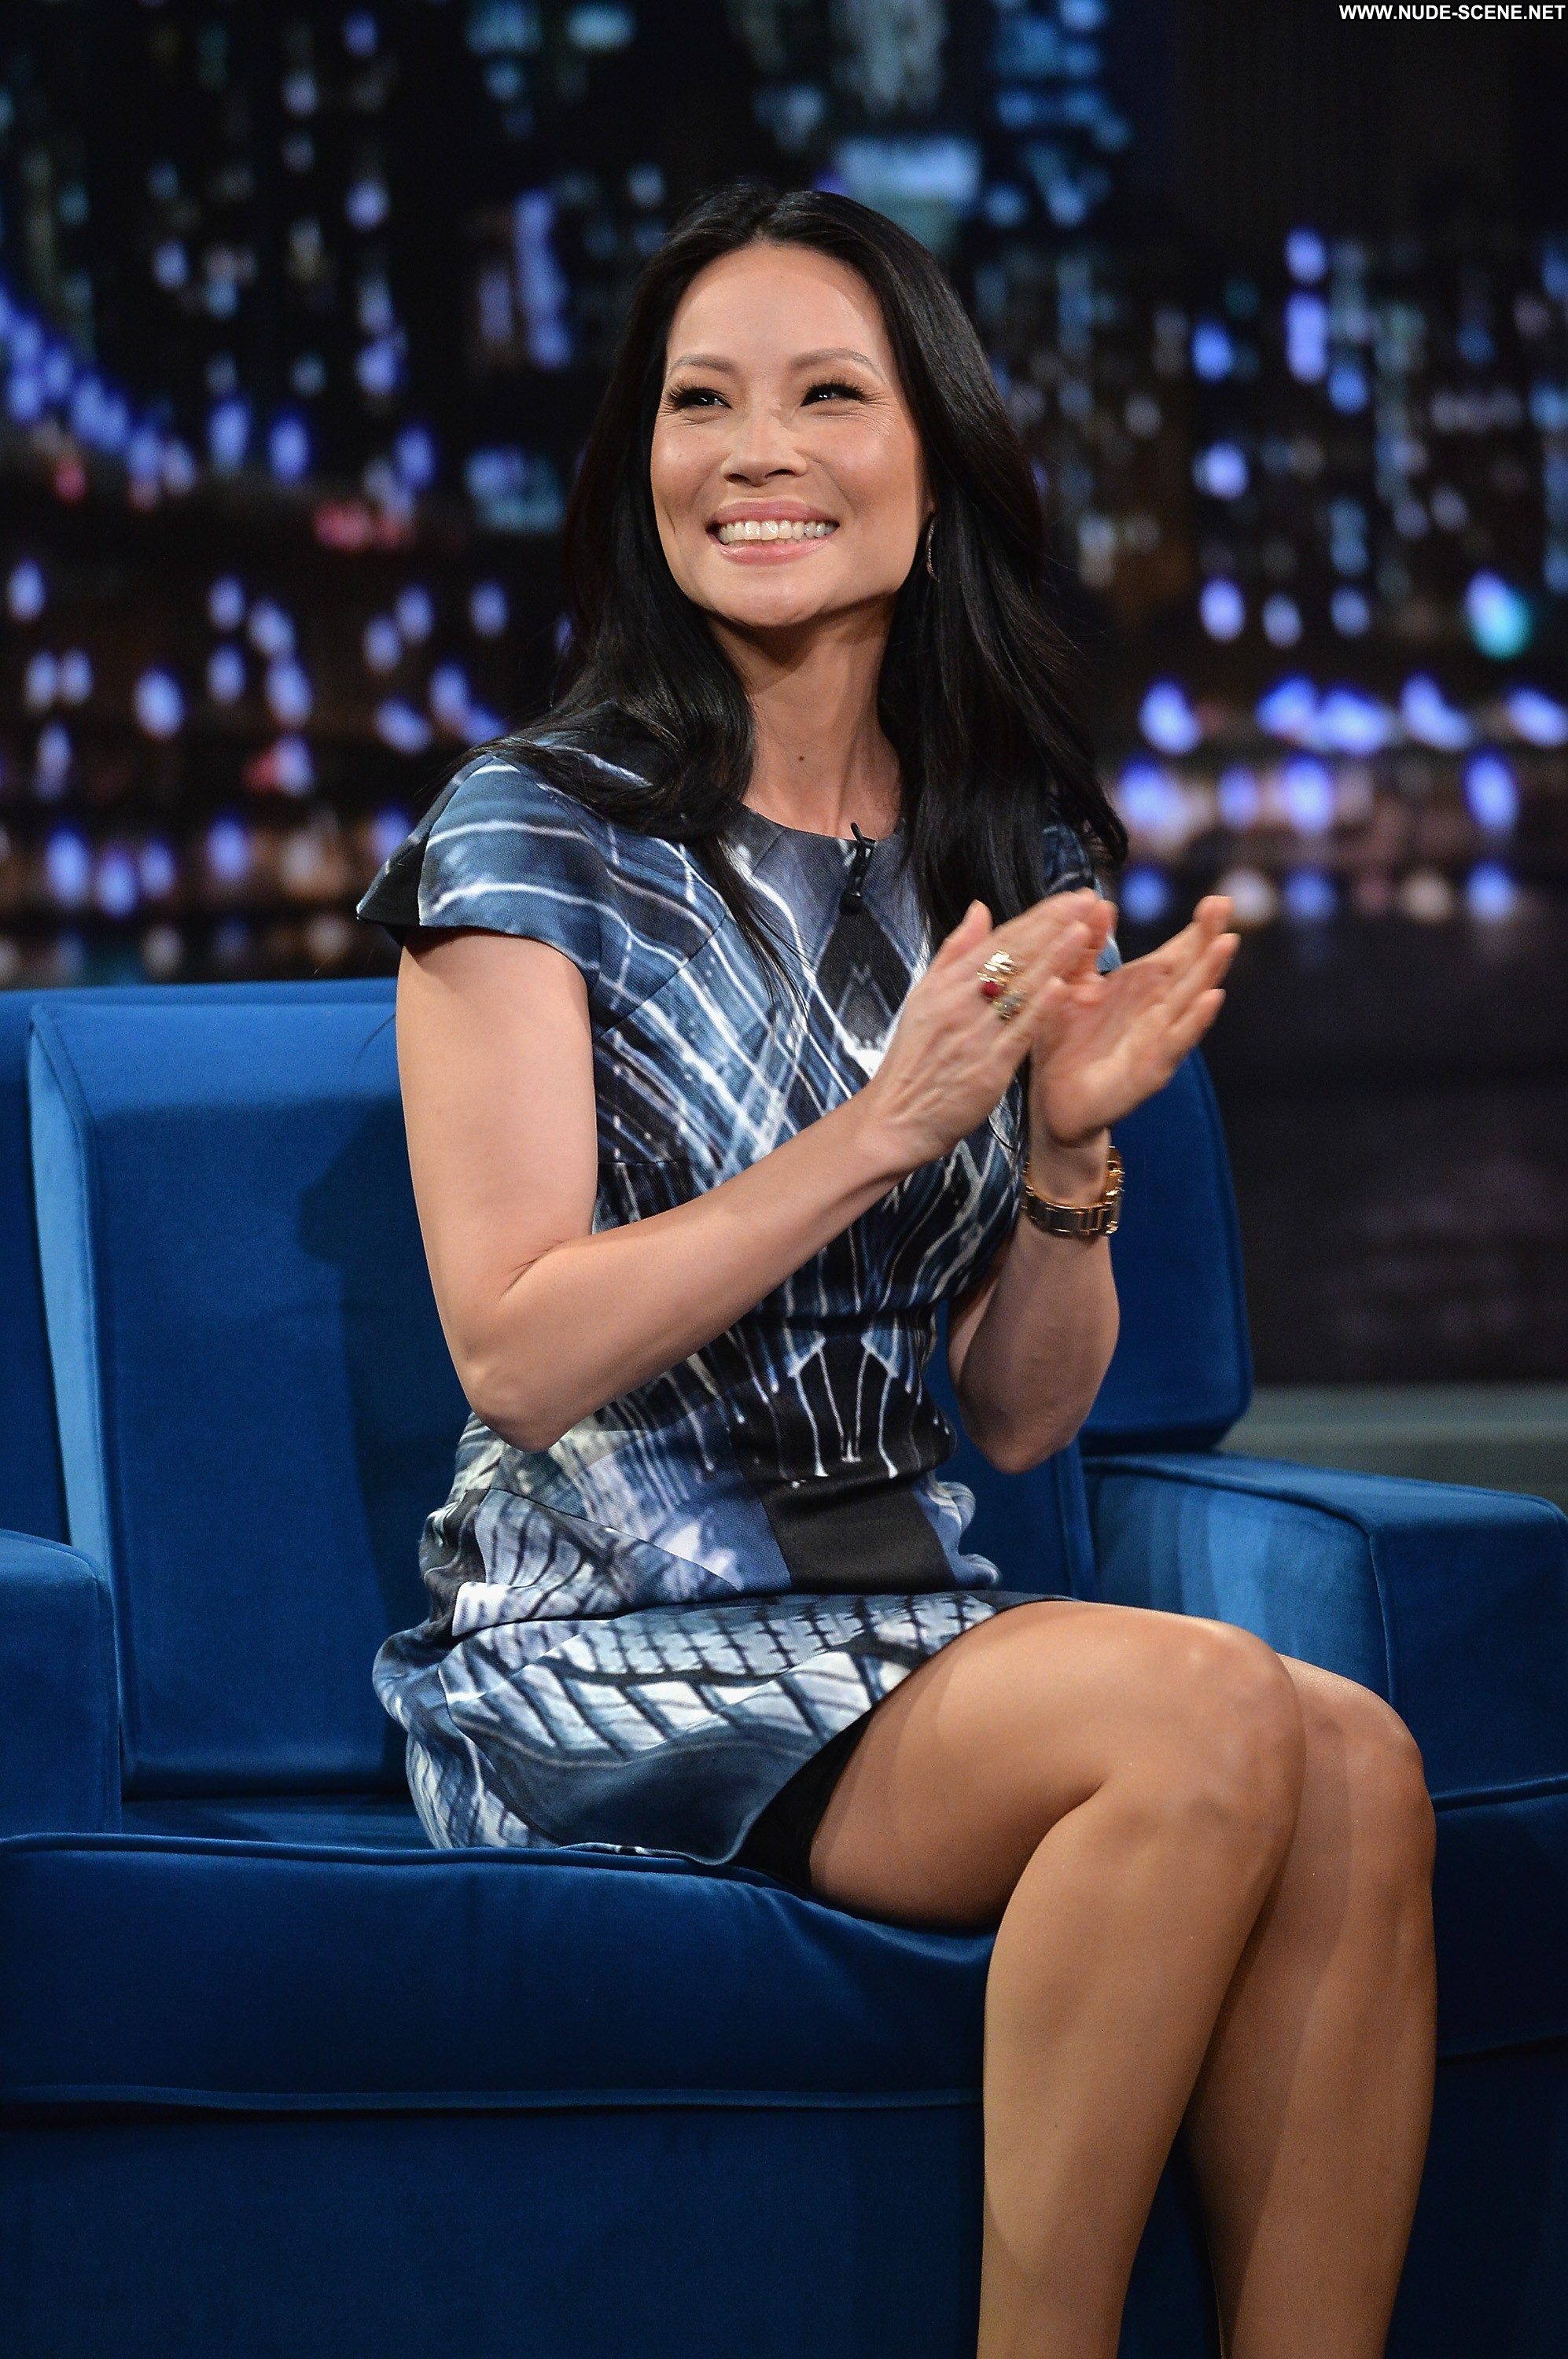 Lucy Liu Late Night With Jimmy Fallon Celebrity Beautiful -3869